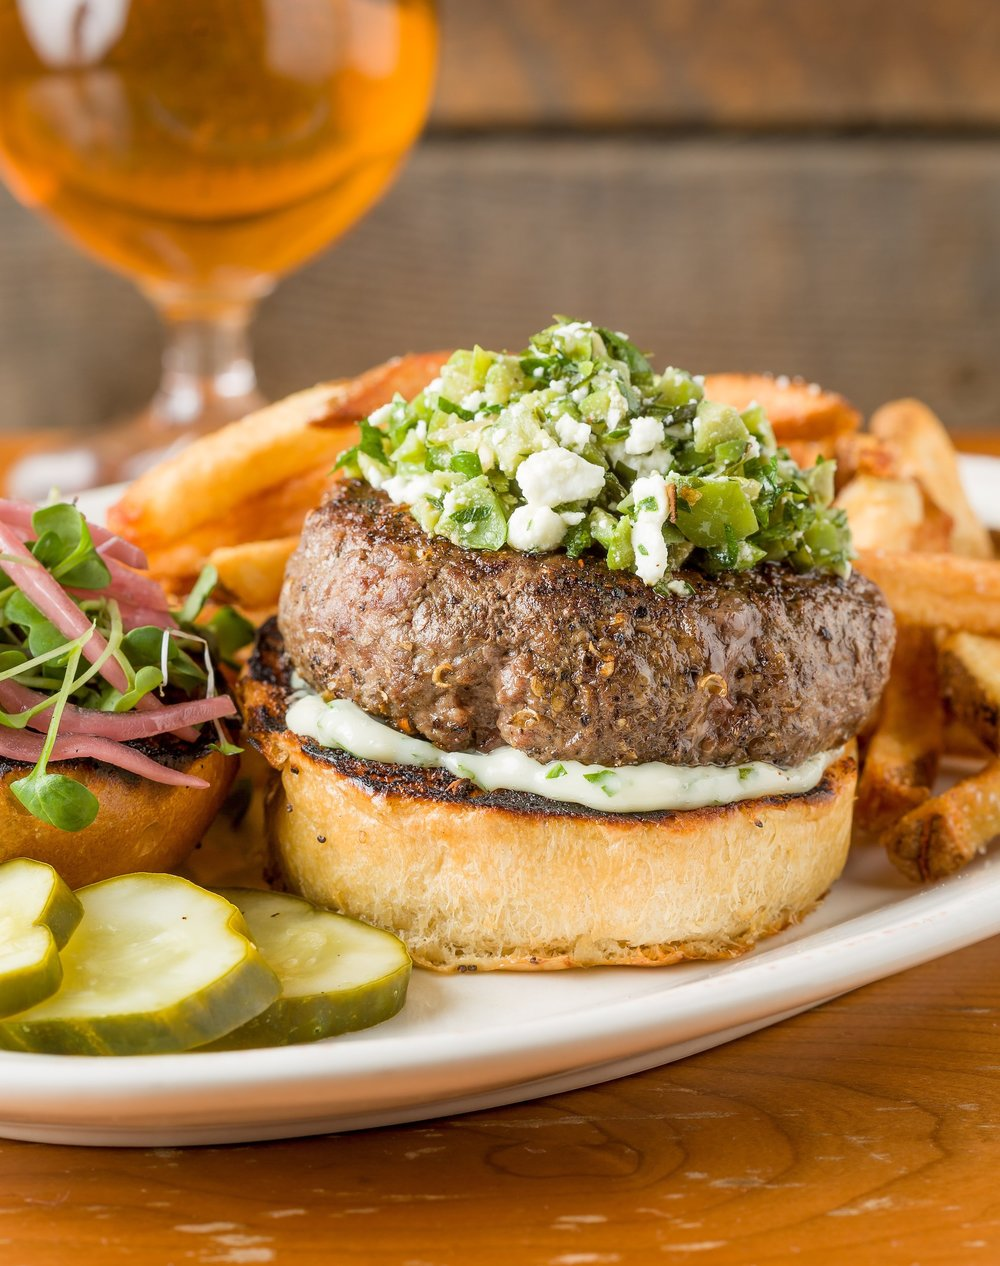 Spiced Vermont Lamb Burgers with Olive Relish and Herb Yogurt